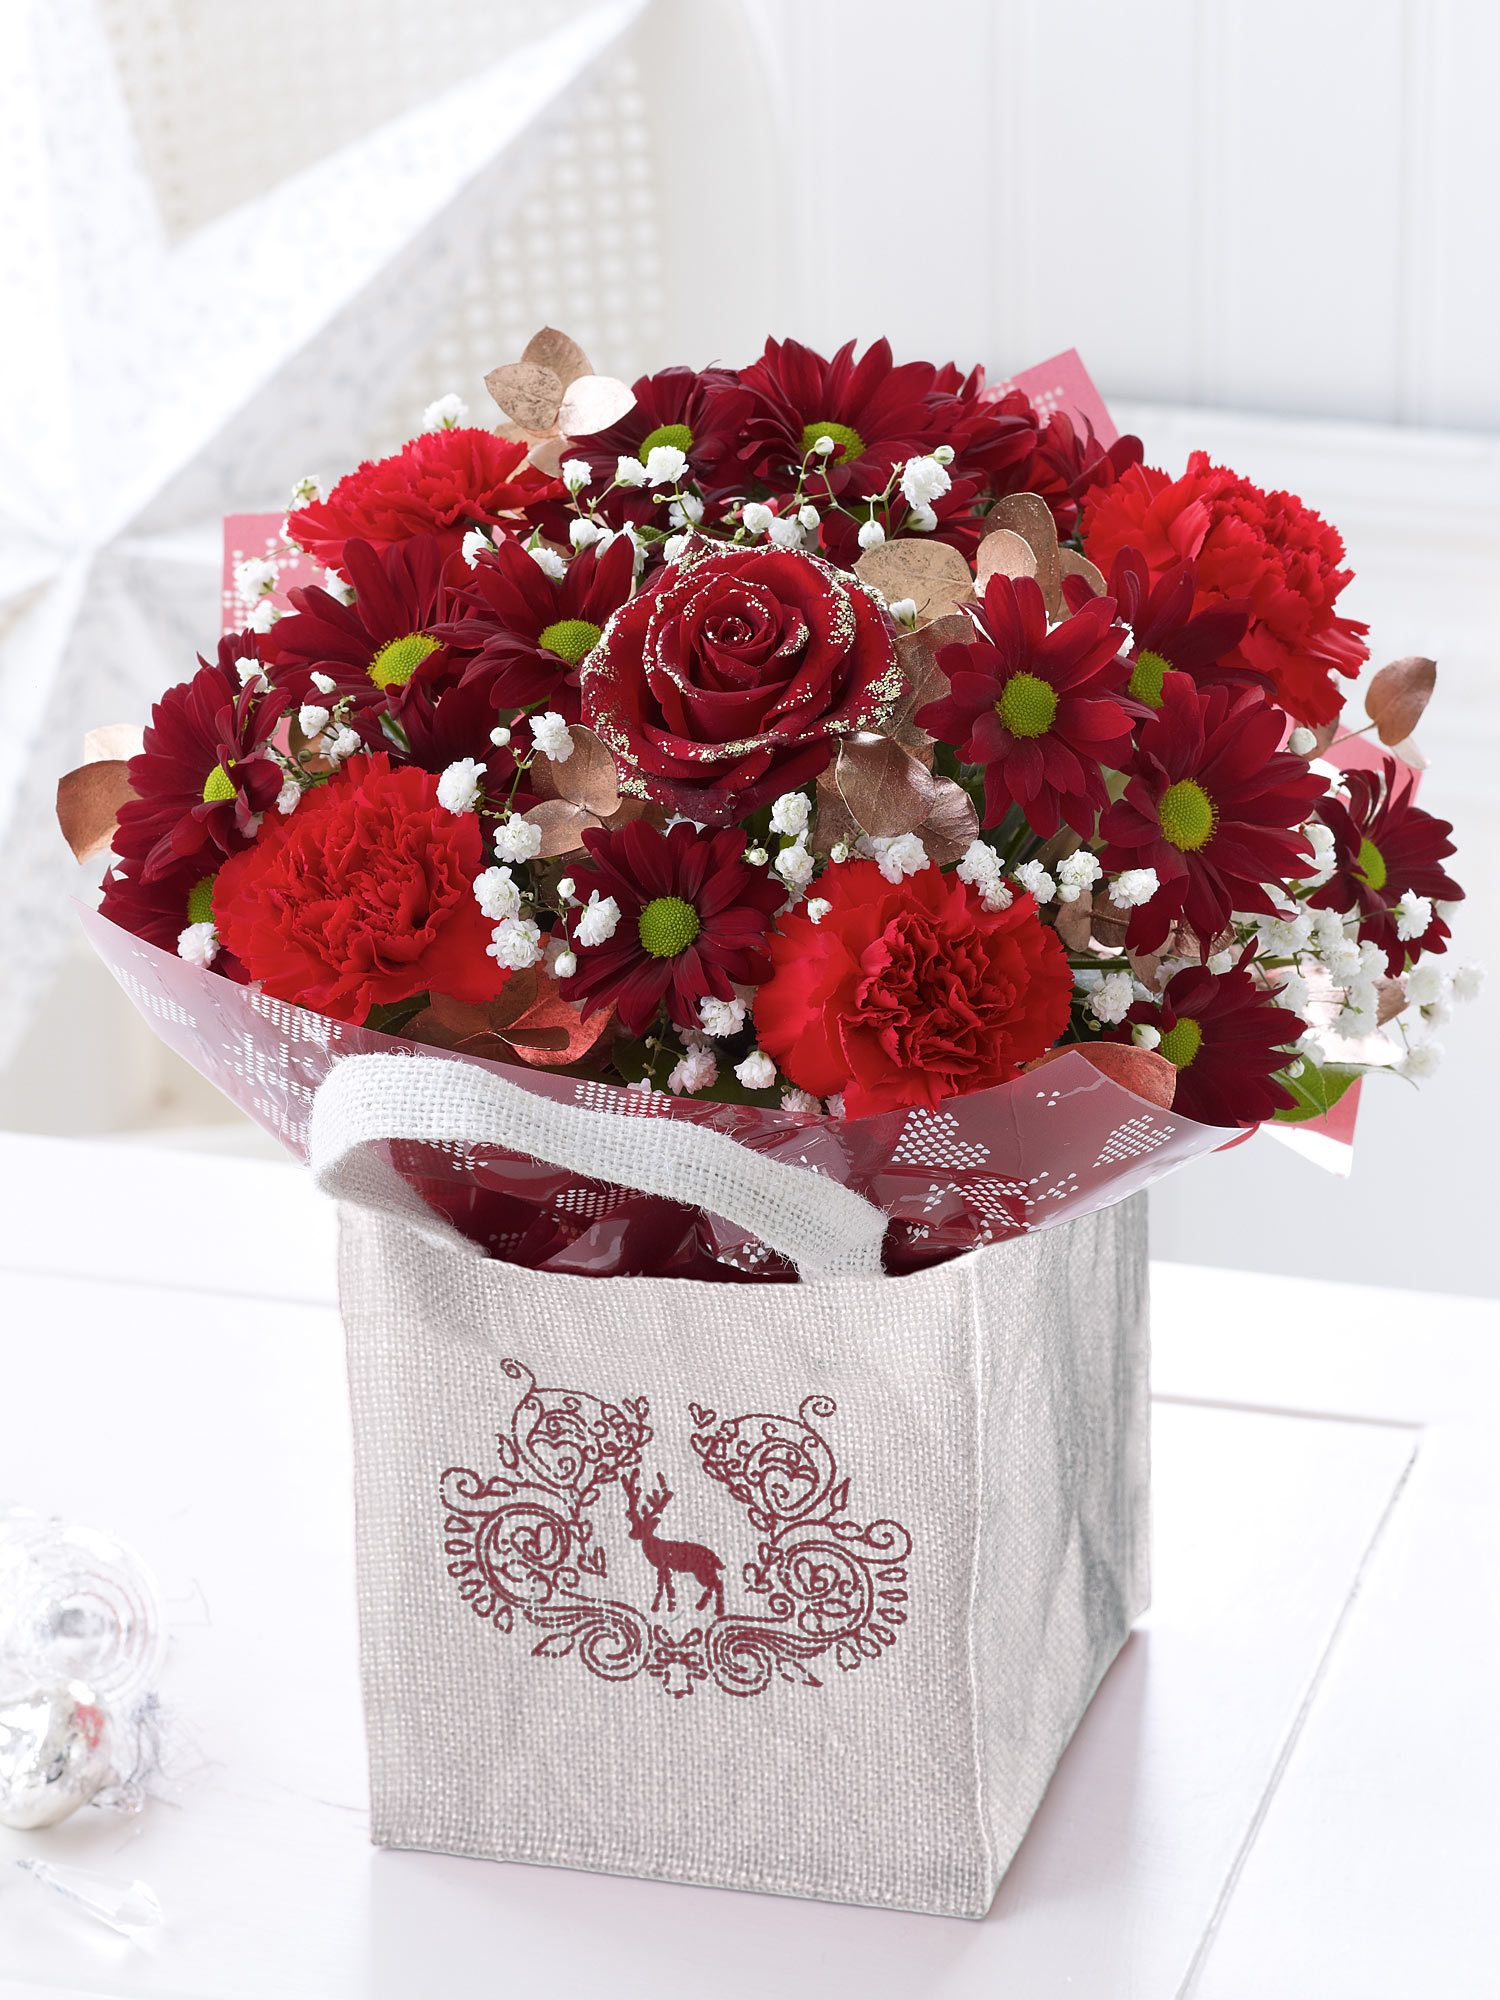 Christmas Gift Bag With Chocolates  Interflora Rose Sprinkled With